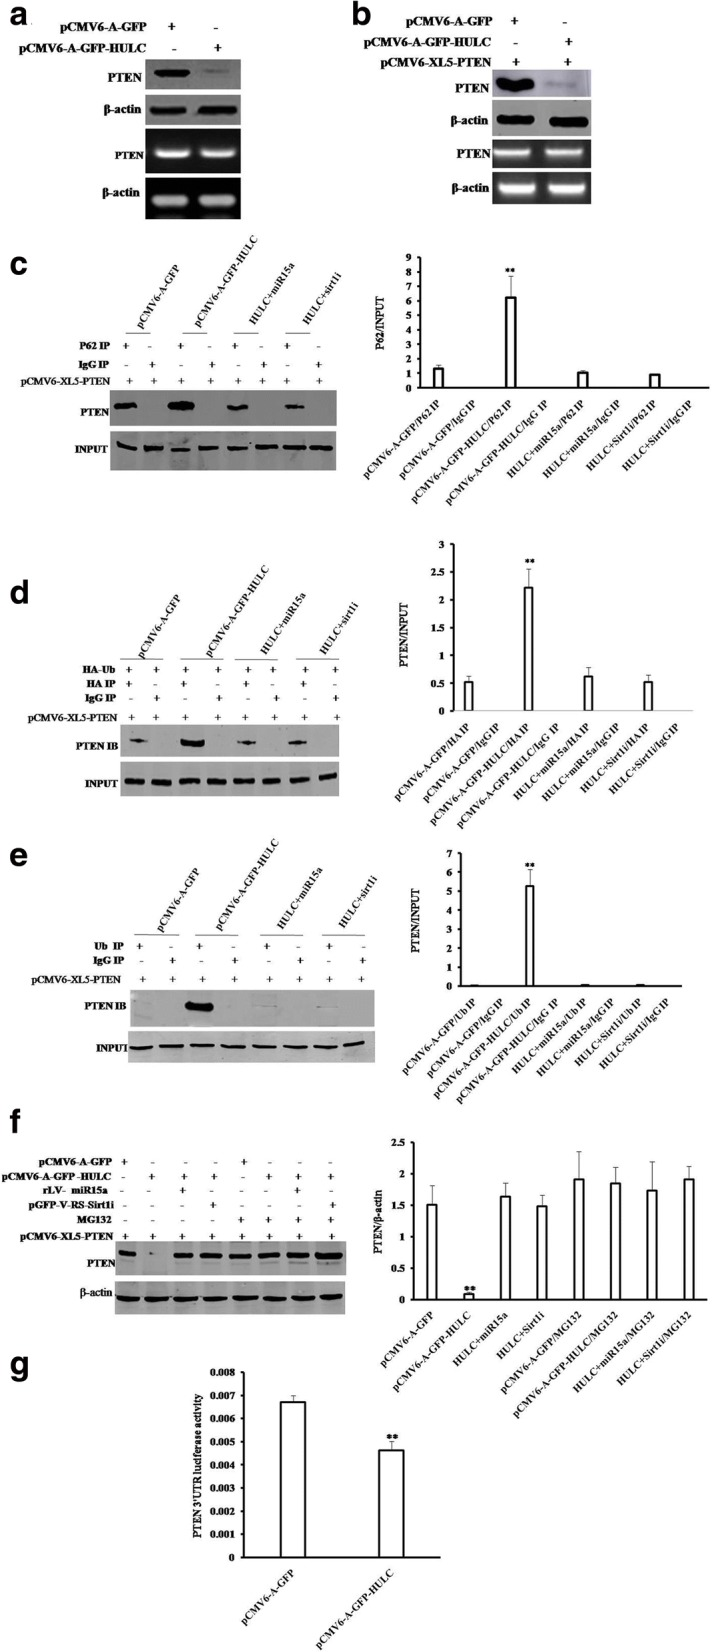 HULC inhibits PTEN through ubiquitin–proteasome system mediated by autophagy-P62. a Western blotting with anti-PTEN and RT-PCR with PTEN primer in Hep3B cell line. β-actin as internal control. b Western blotting with anti-PTEN and RT-PCR with PTEN primer in Hep3B cell lines transfected with pCMV6-A-GFP plus pCMV6-XL5-PTEN (FL), pCMV6-A-GFP-HULC plus pCMV6-XL5-PTEN (FL),respectively. c (left) Co-Immunoprecipitation (IP) with anti-62 followed by Western blotting with anti-PTEN in Hep3B cell lines transfected with pCMV6 -A-GFP plus pCMV6 -XL5-PTEN (FL), pCMV6-A-GFP-HULC plus pCMV6 -XL5-PTEN (FL), pCMV6-A-GFP-HULC plus pGFP-V-RS--Sirt1 plus pCMV6-XL5-PTEN (FL), and pCMV6-A-GFP-HULC plus pLV-miR15a plus pCMV6-XL5-PTEN (FL), respectively. ( right) density analysis of band. d (left) Co-Immunoprecipitation (IP) with anti-HA followed by Western blotting with anti-PTEN in the Hep3B cell line. INPUT refers to Western blotting with. Anti-PTEN. ( right) density analysis of band. e (left) Co-Immunoprecipitation (IP) with anti-HA followed by Western blotting with anti-PTEN in the Hep3B cell line. ( right) density analysis of band. f (left) Cells were incubated with 50 μM MG132 (Sigma) for 6 h at proper after transfection. Western blotting with anti-PTEN in Hep3B cell lines transfected with pCMV6-A-GFP plus pCMV6-XL5-PTEN (FL). g . The assay of PTEN 3'-UTR luciferase activity in Hep3B cells infected with pCMV6-A-GFP or pCMV6-A-GFP-HULC